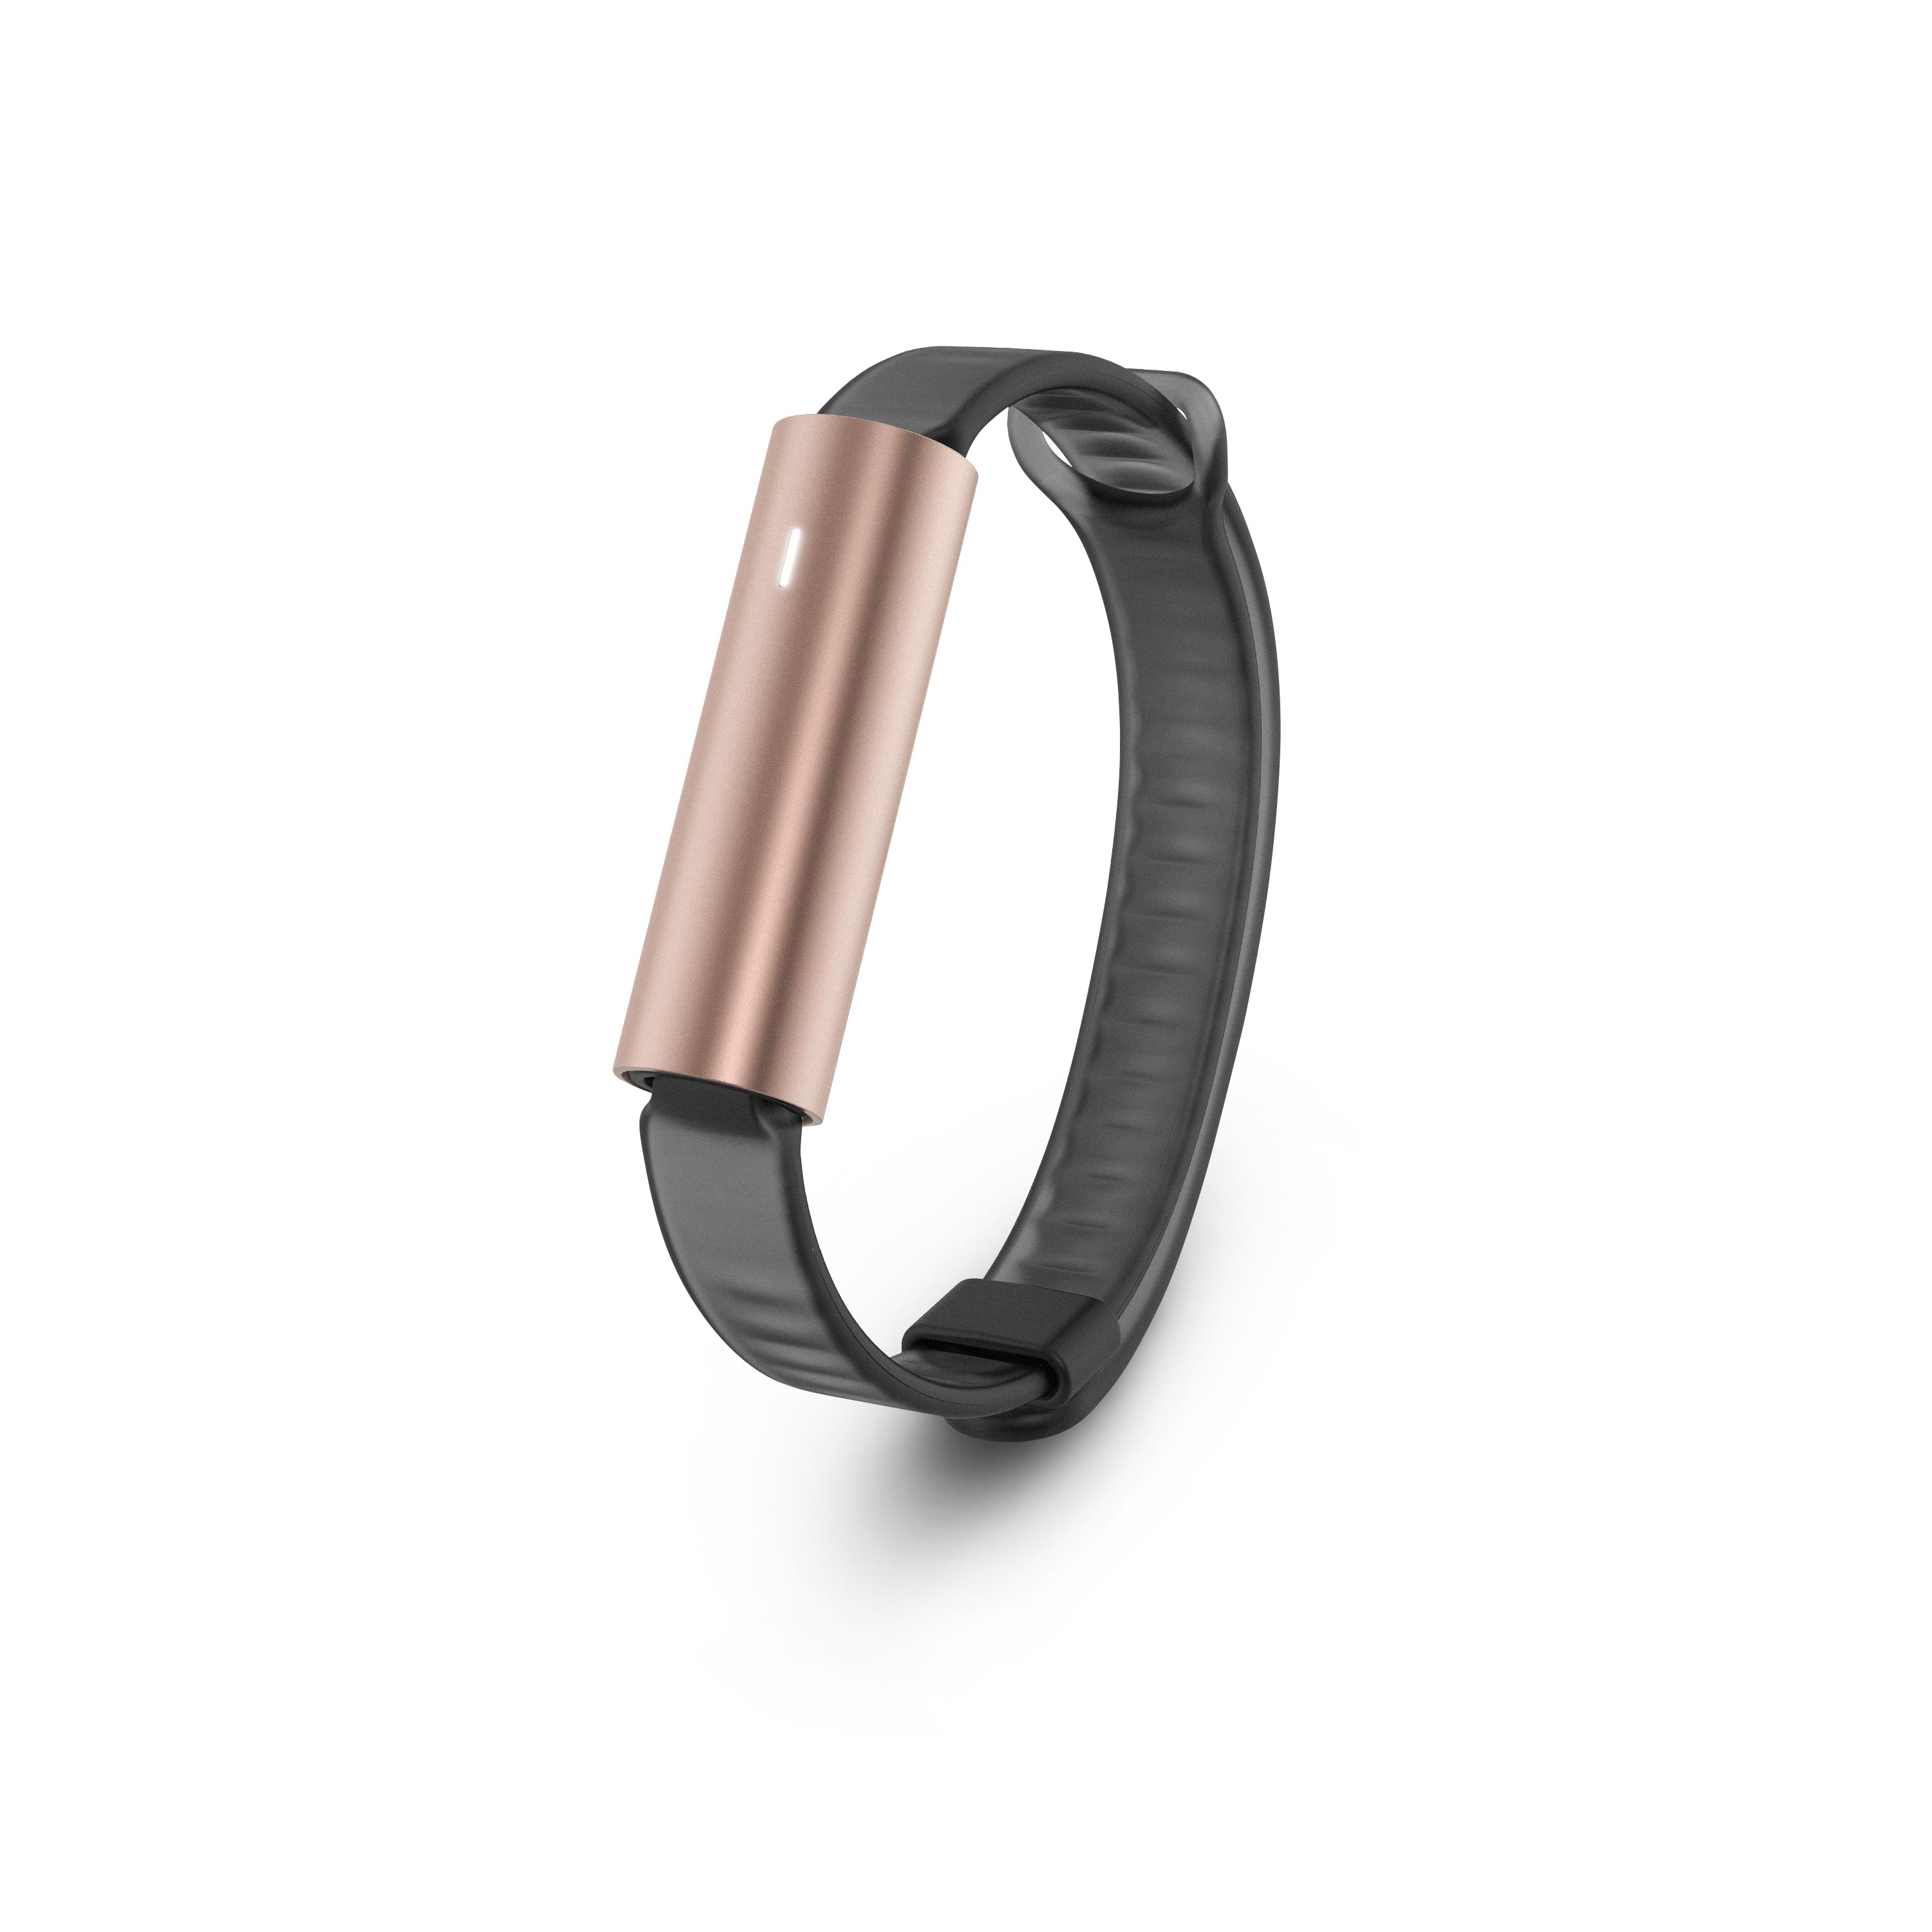 best new stylish fitness trackers. Misfit Ray. Healthista